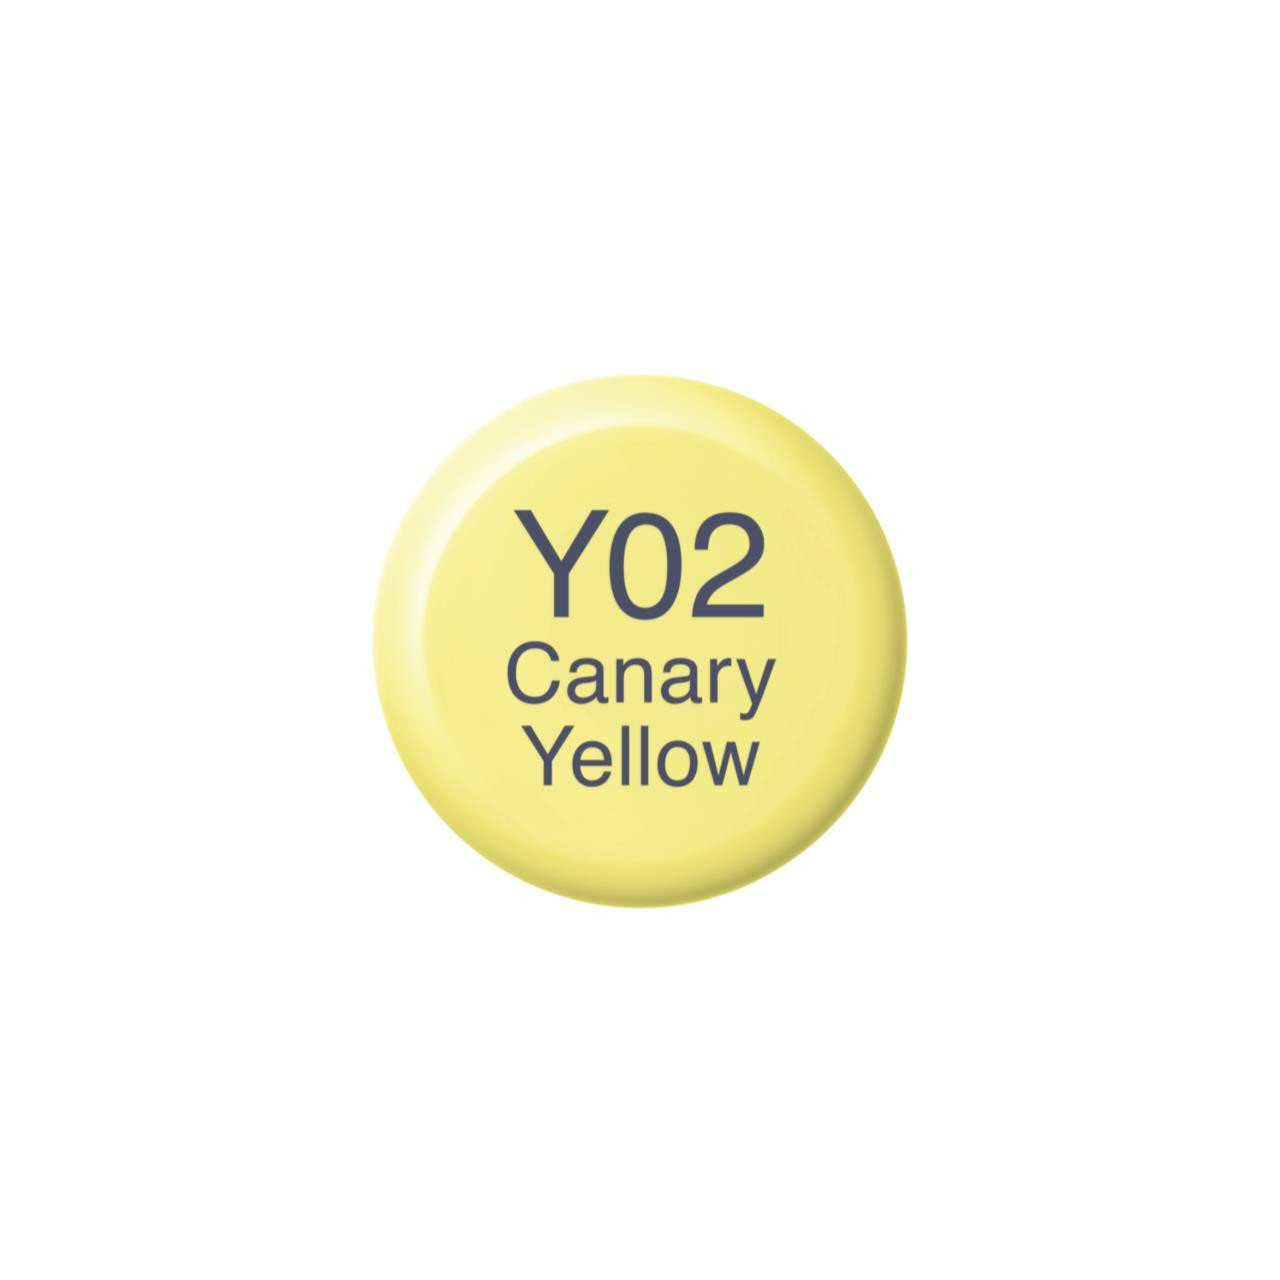 Y02 Canary Yellow, Copic Ink - 4511338058169